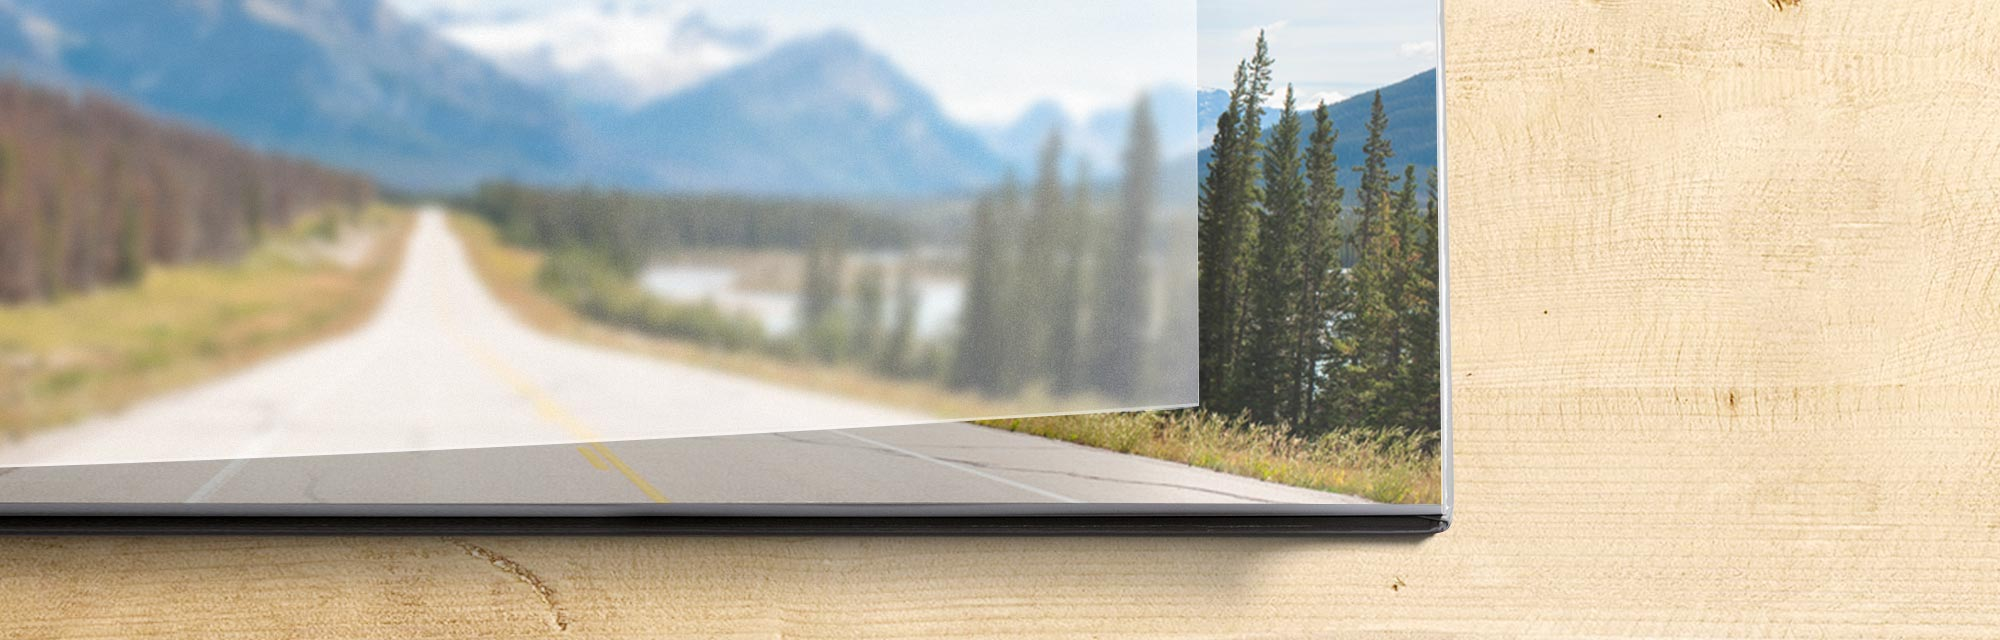 Premium books : Add a touch of class with a premium photo book. Printed on premium metallic-quality photo paper reserved for photography professionals.